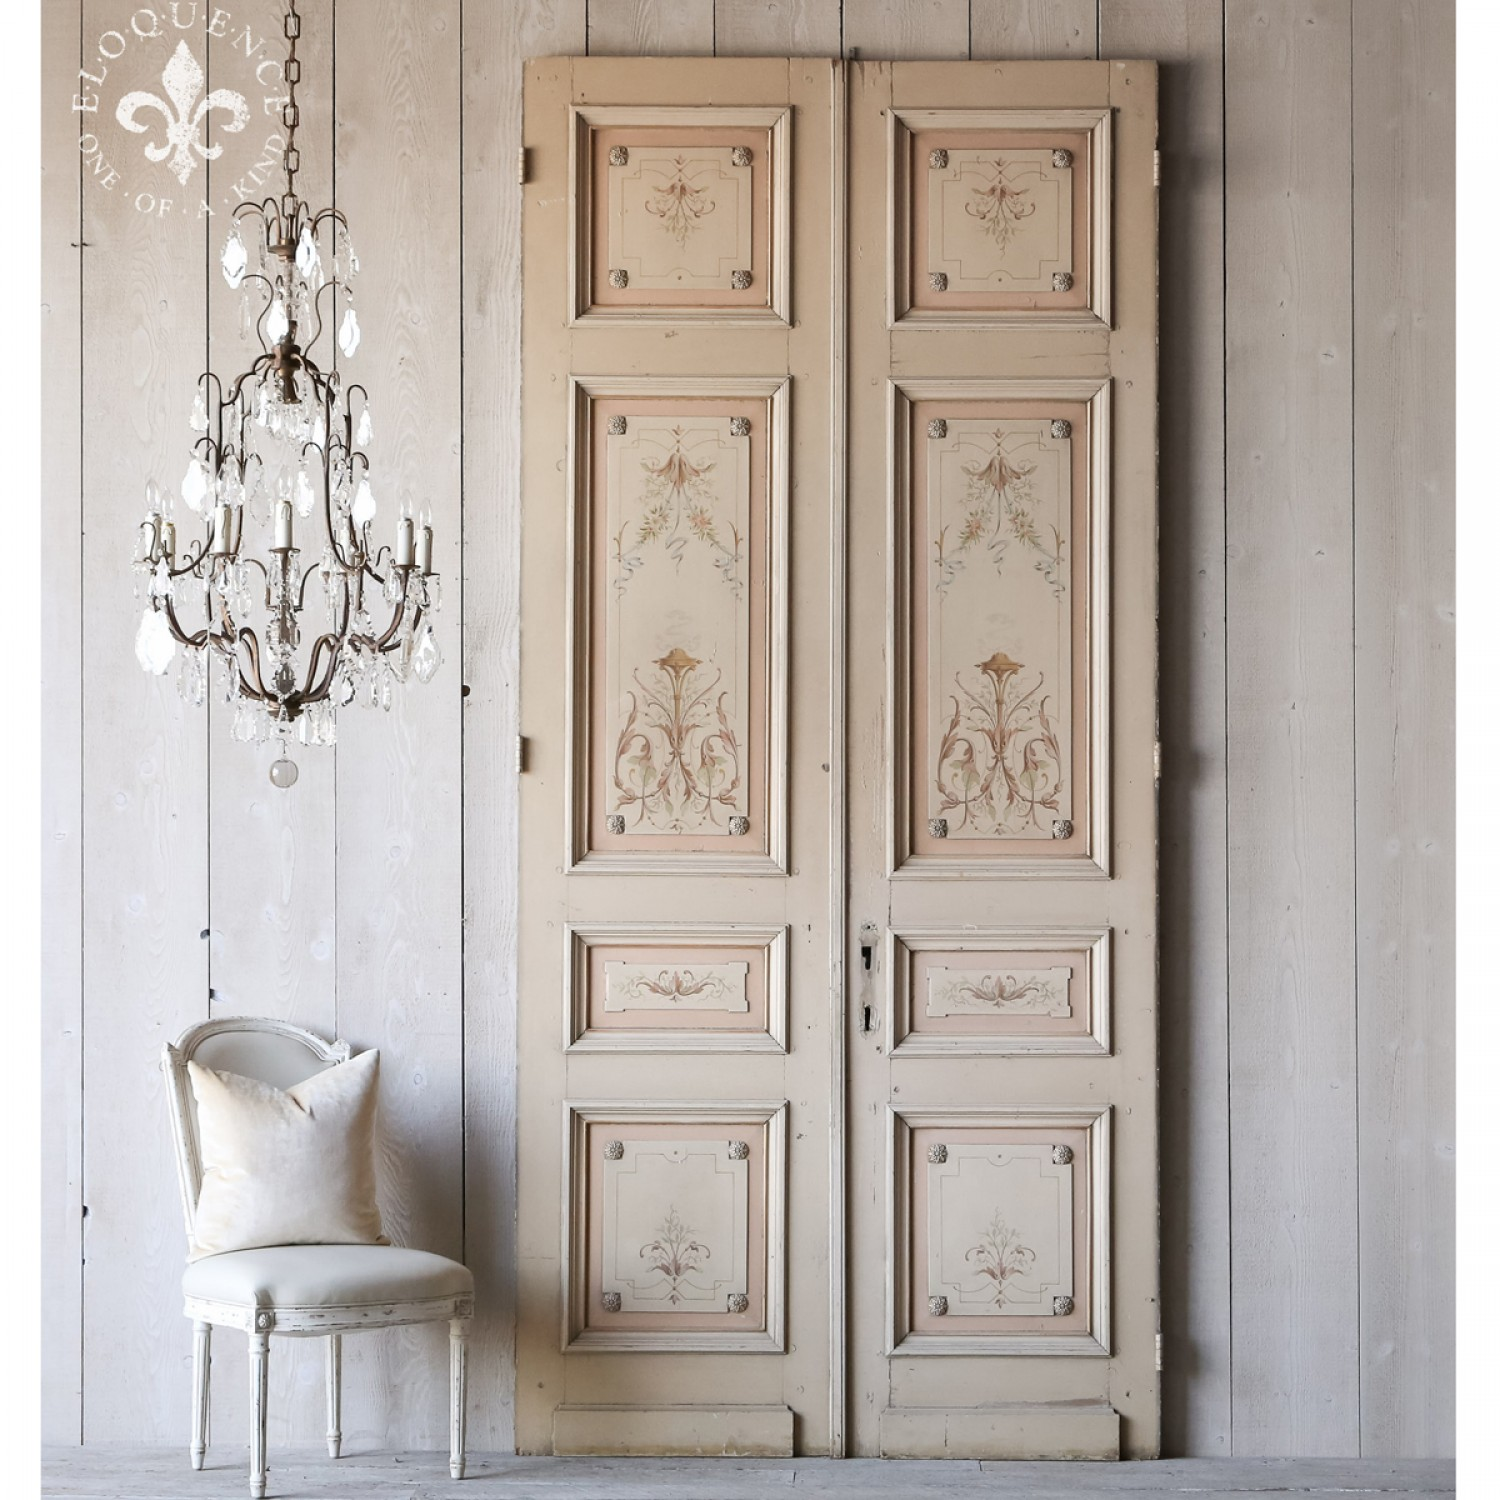 Küche Pino 2015 Beautify Your Home With French Doors Interior 18 Inches